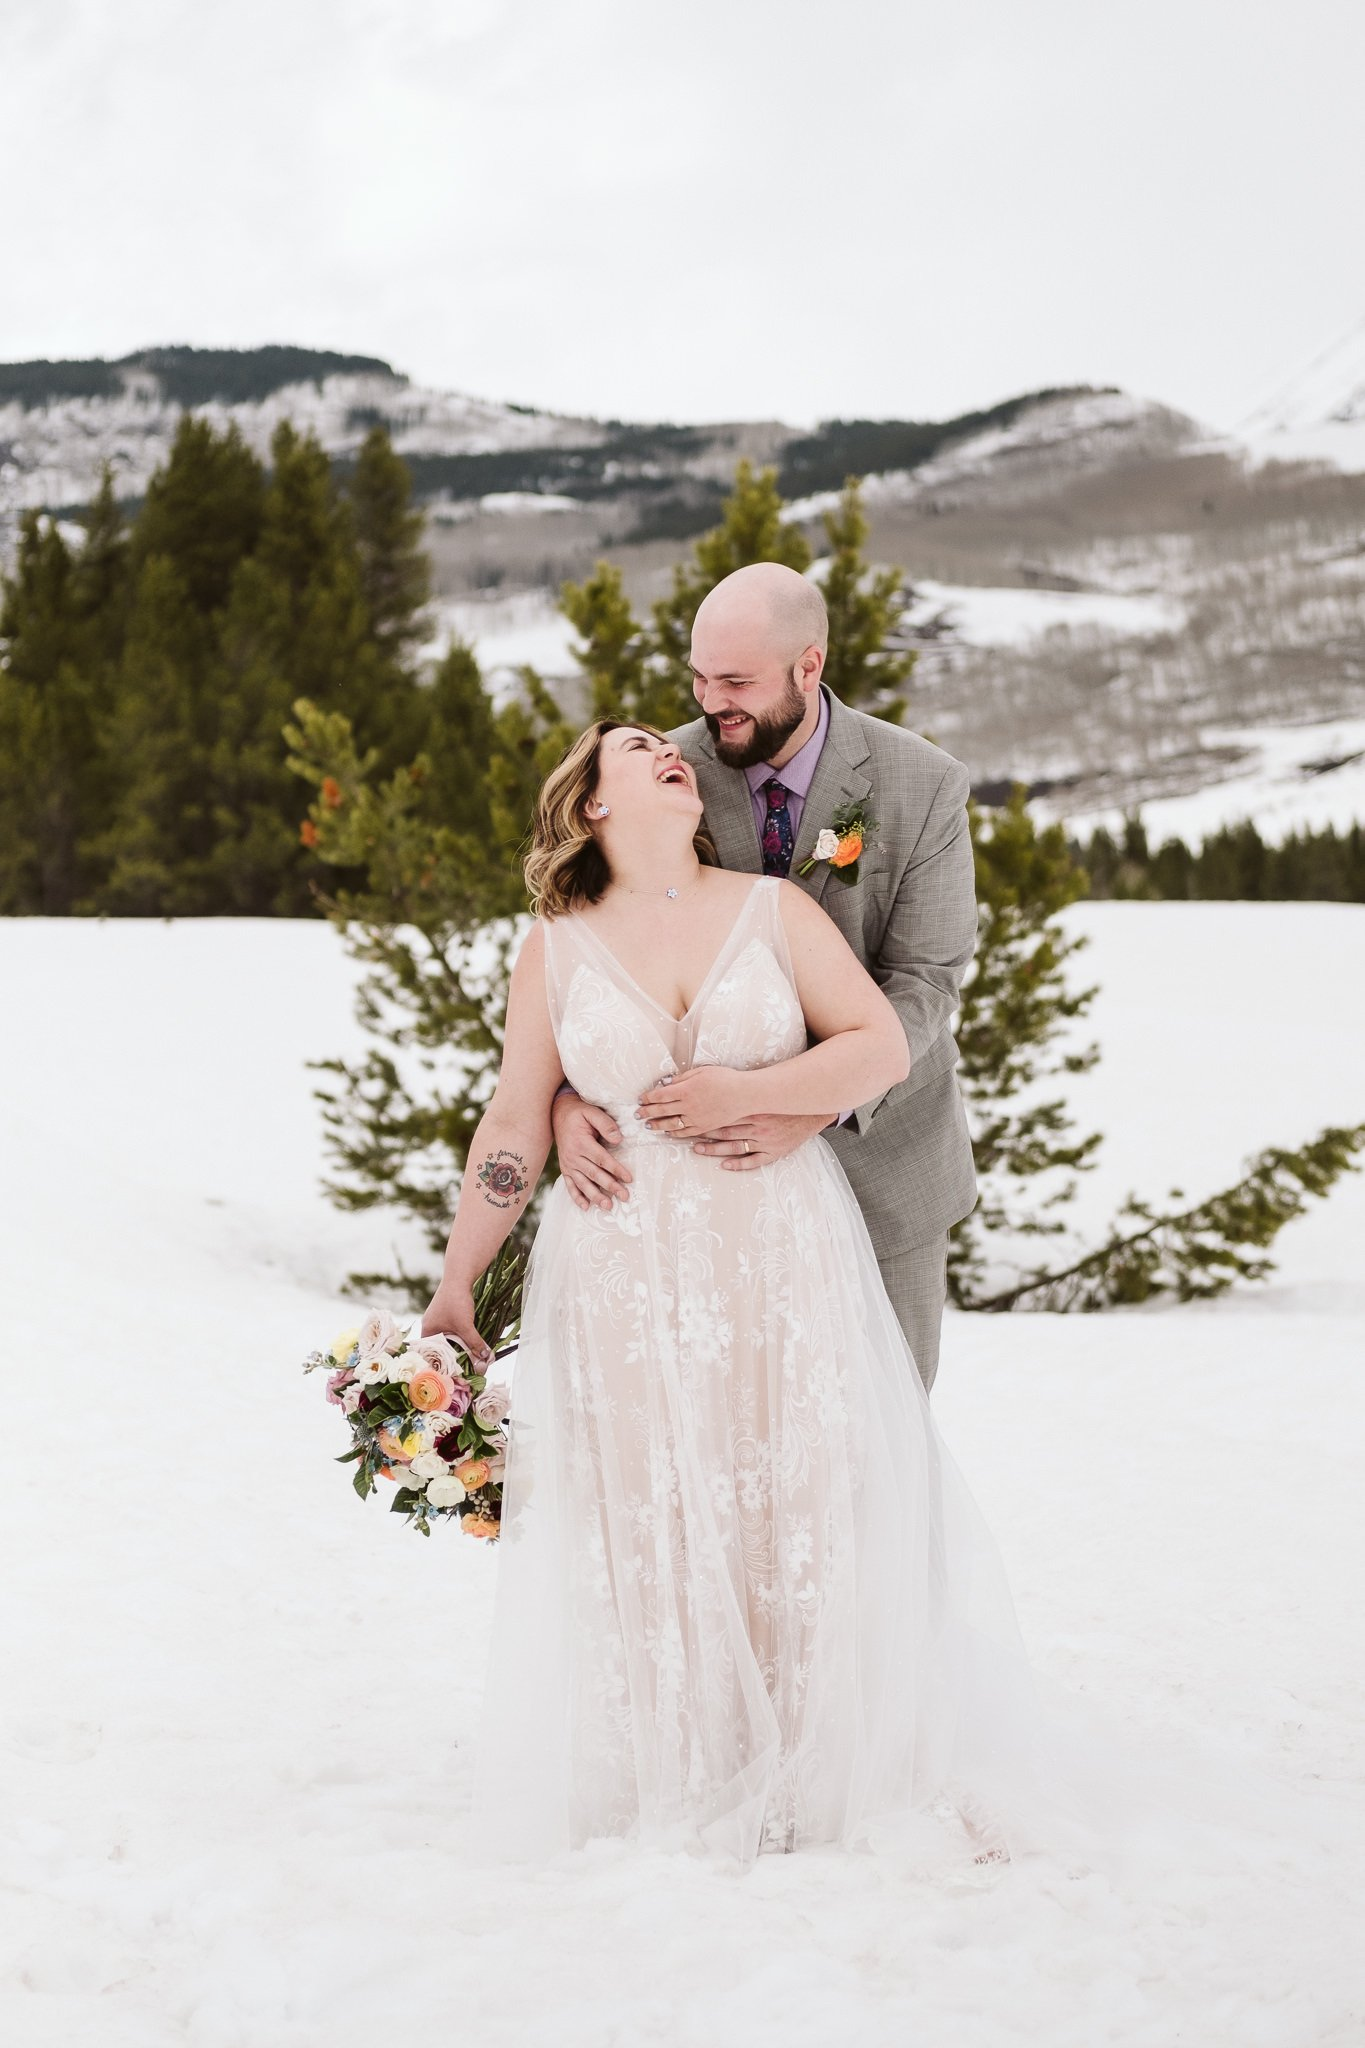 Bride and groom portrait in snowy woods, Crested Butte winter wedding photography